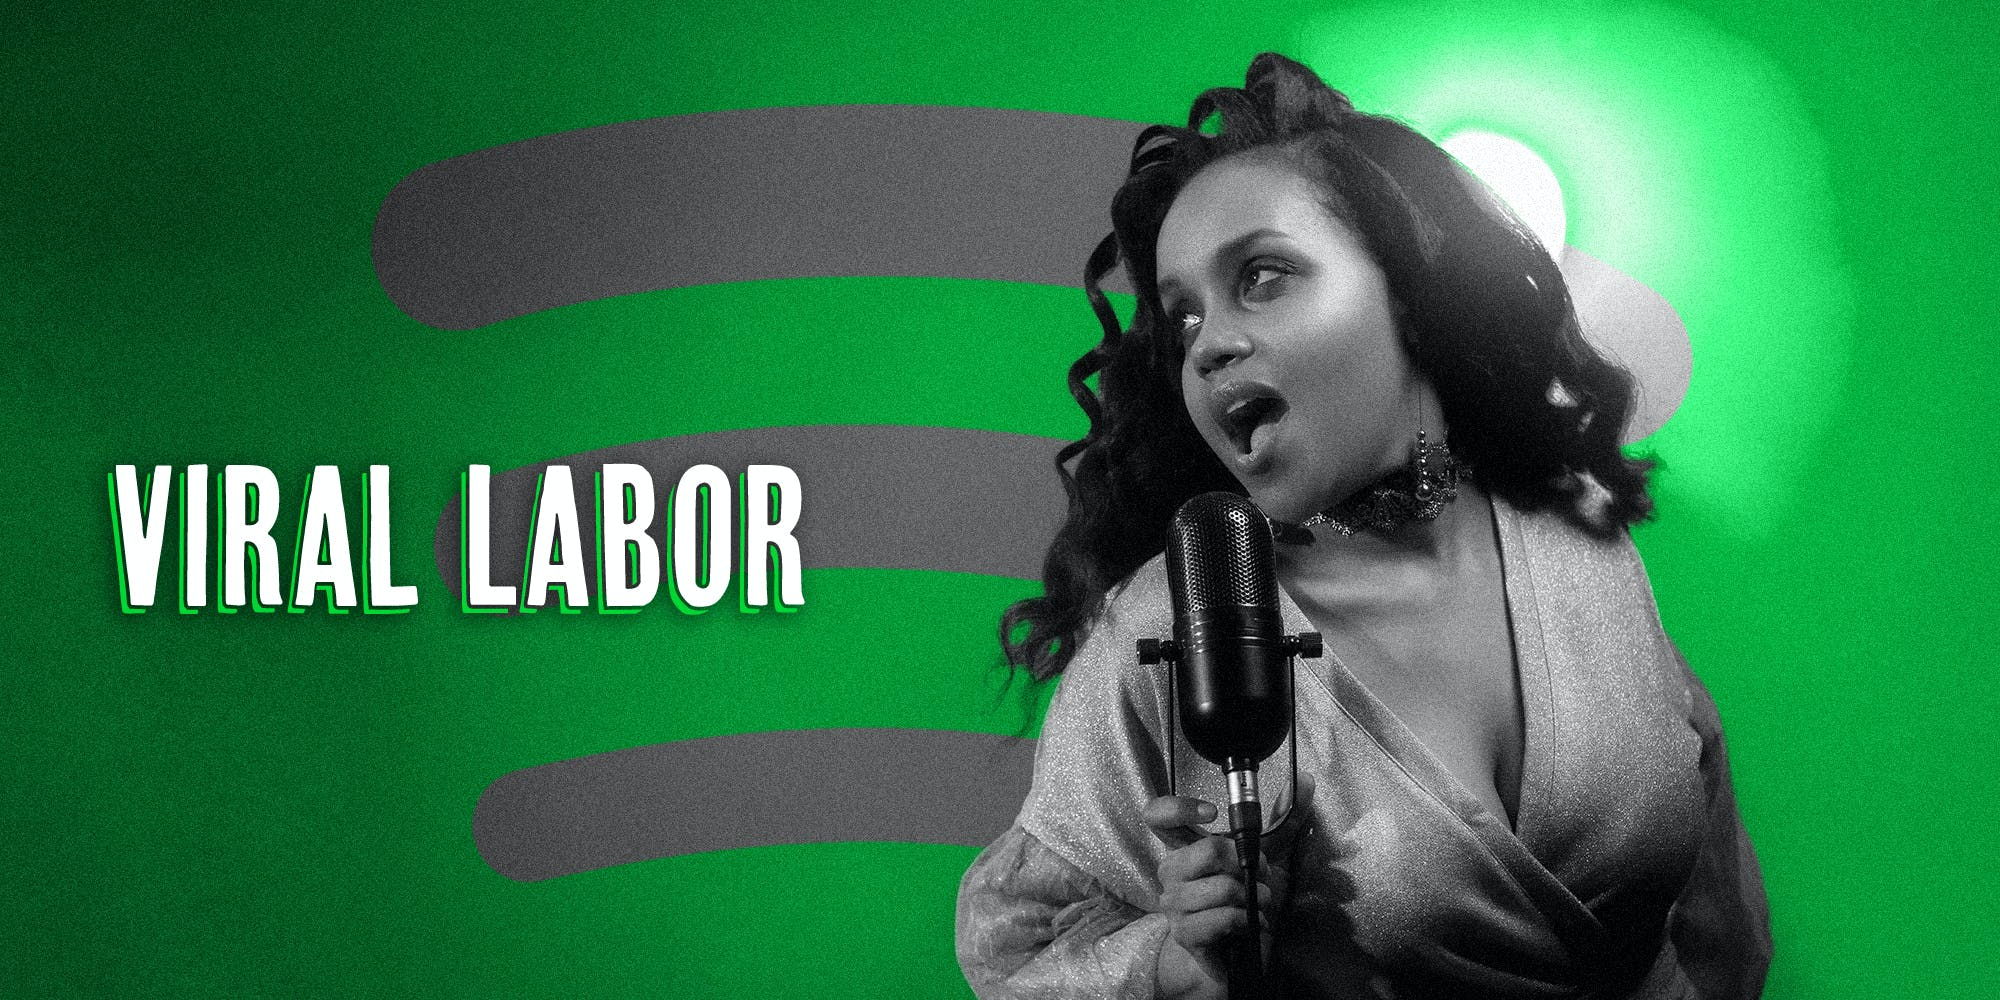 Black woman with vintage condenser mic over Spotify logo